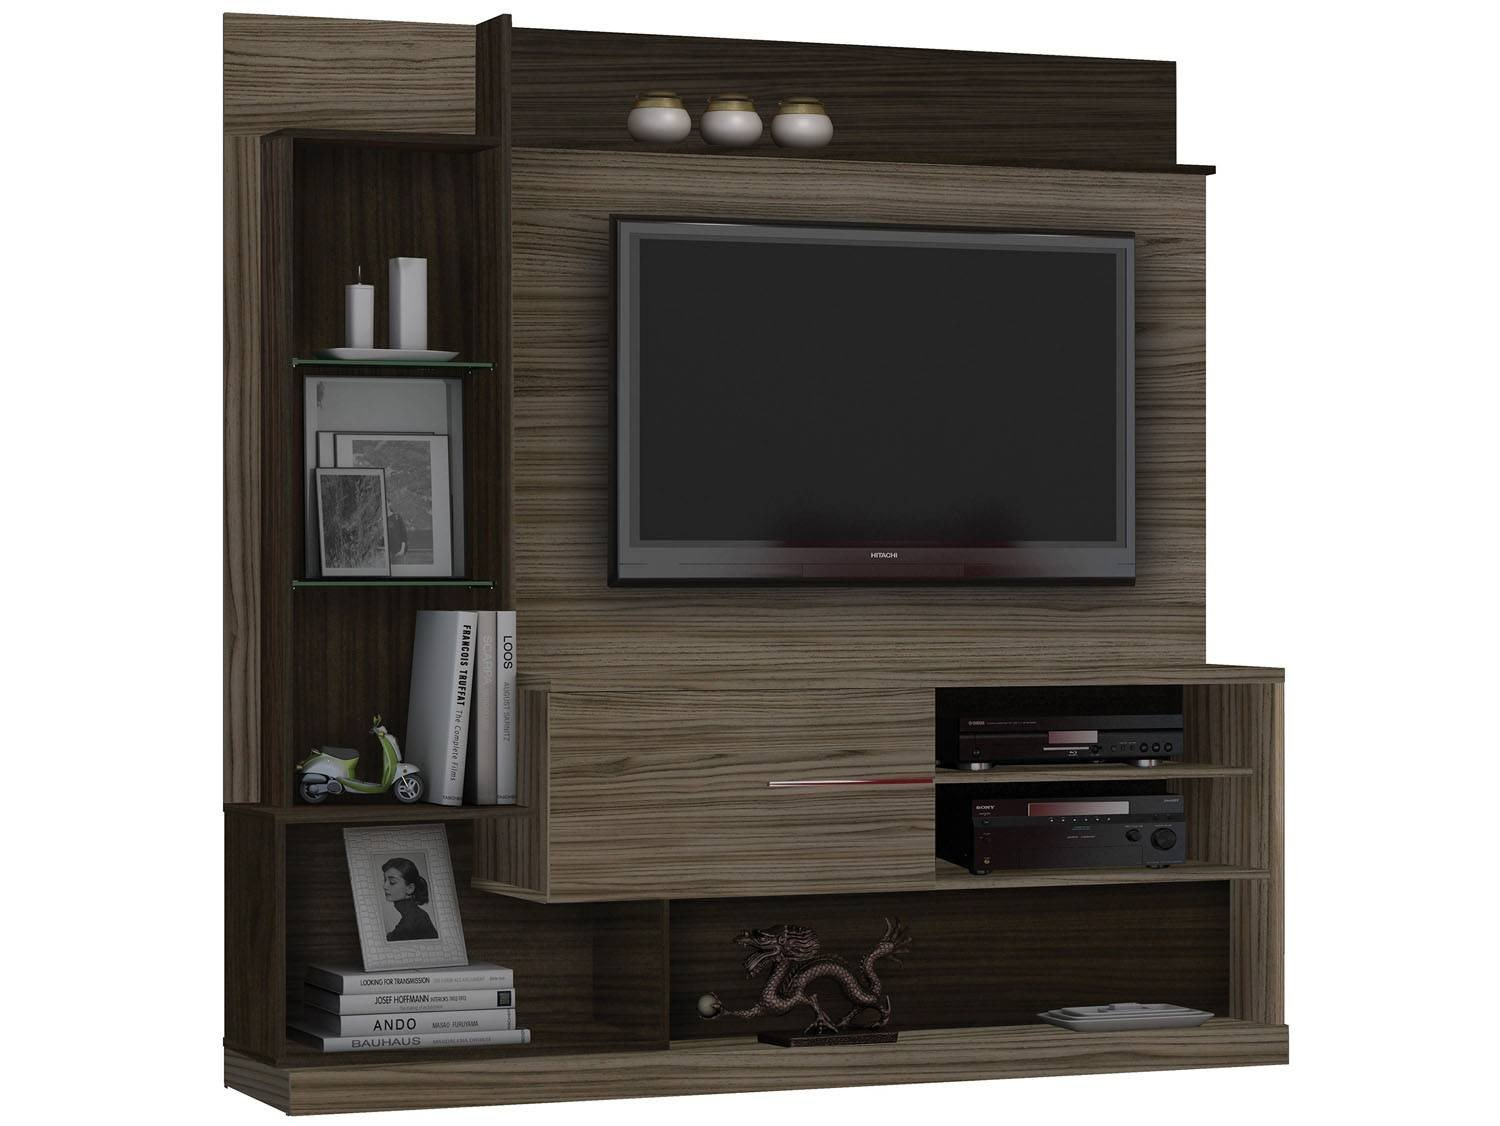 Estante home para tv at 55 dimas 1 porta 5 prateleiras - Estantes de pared originales ...